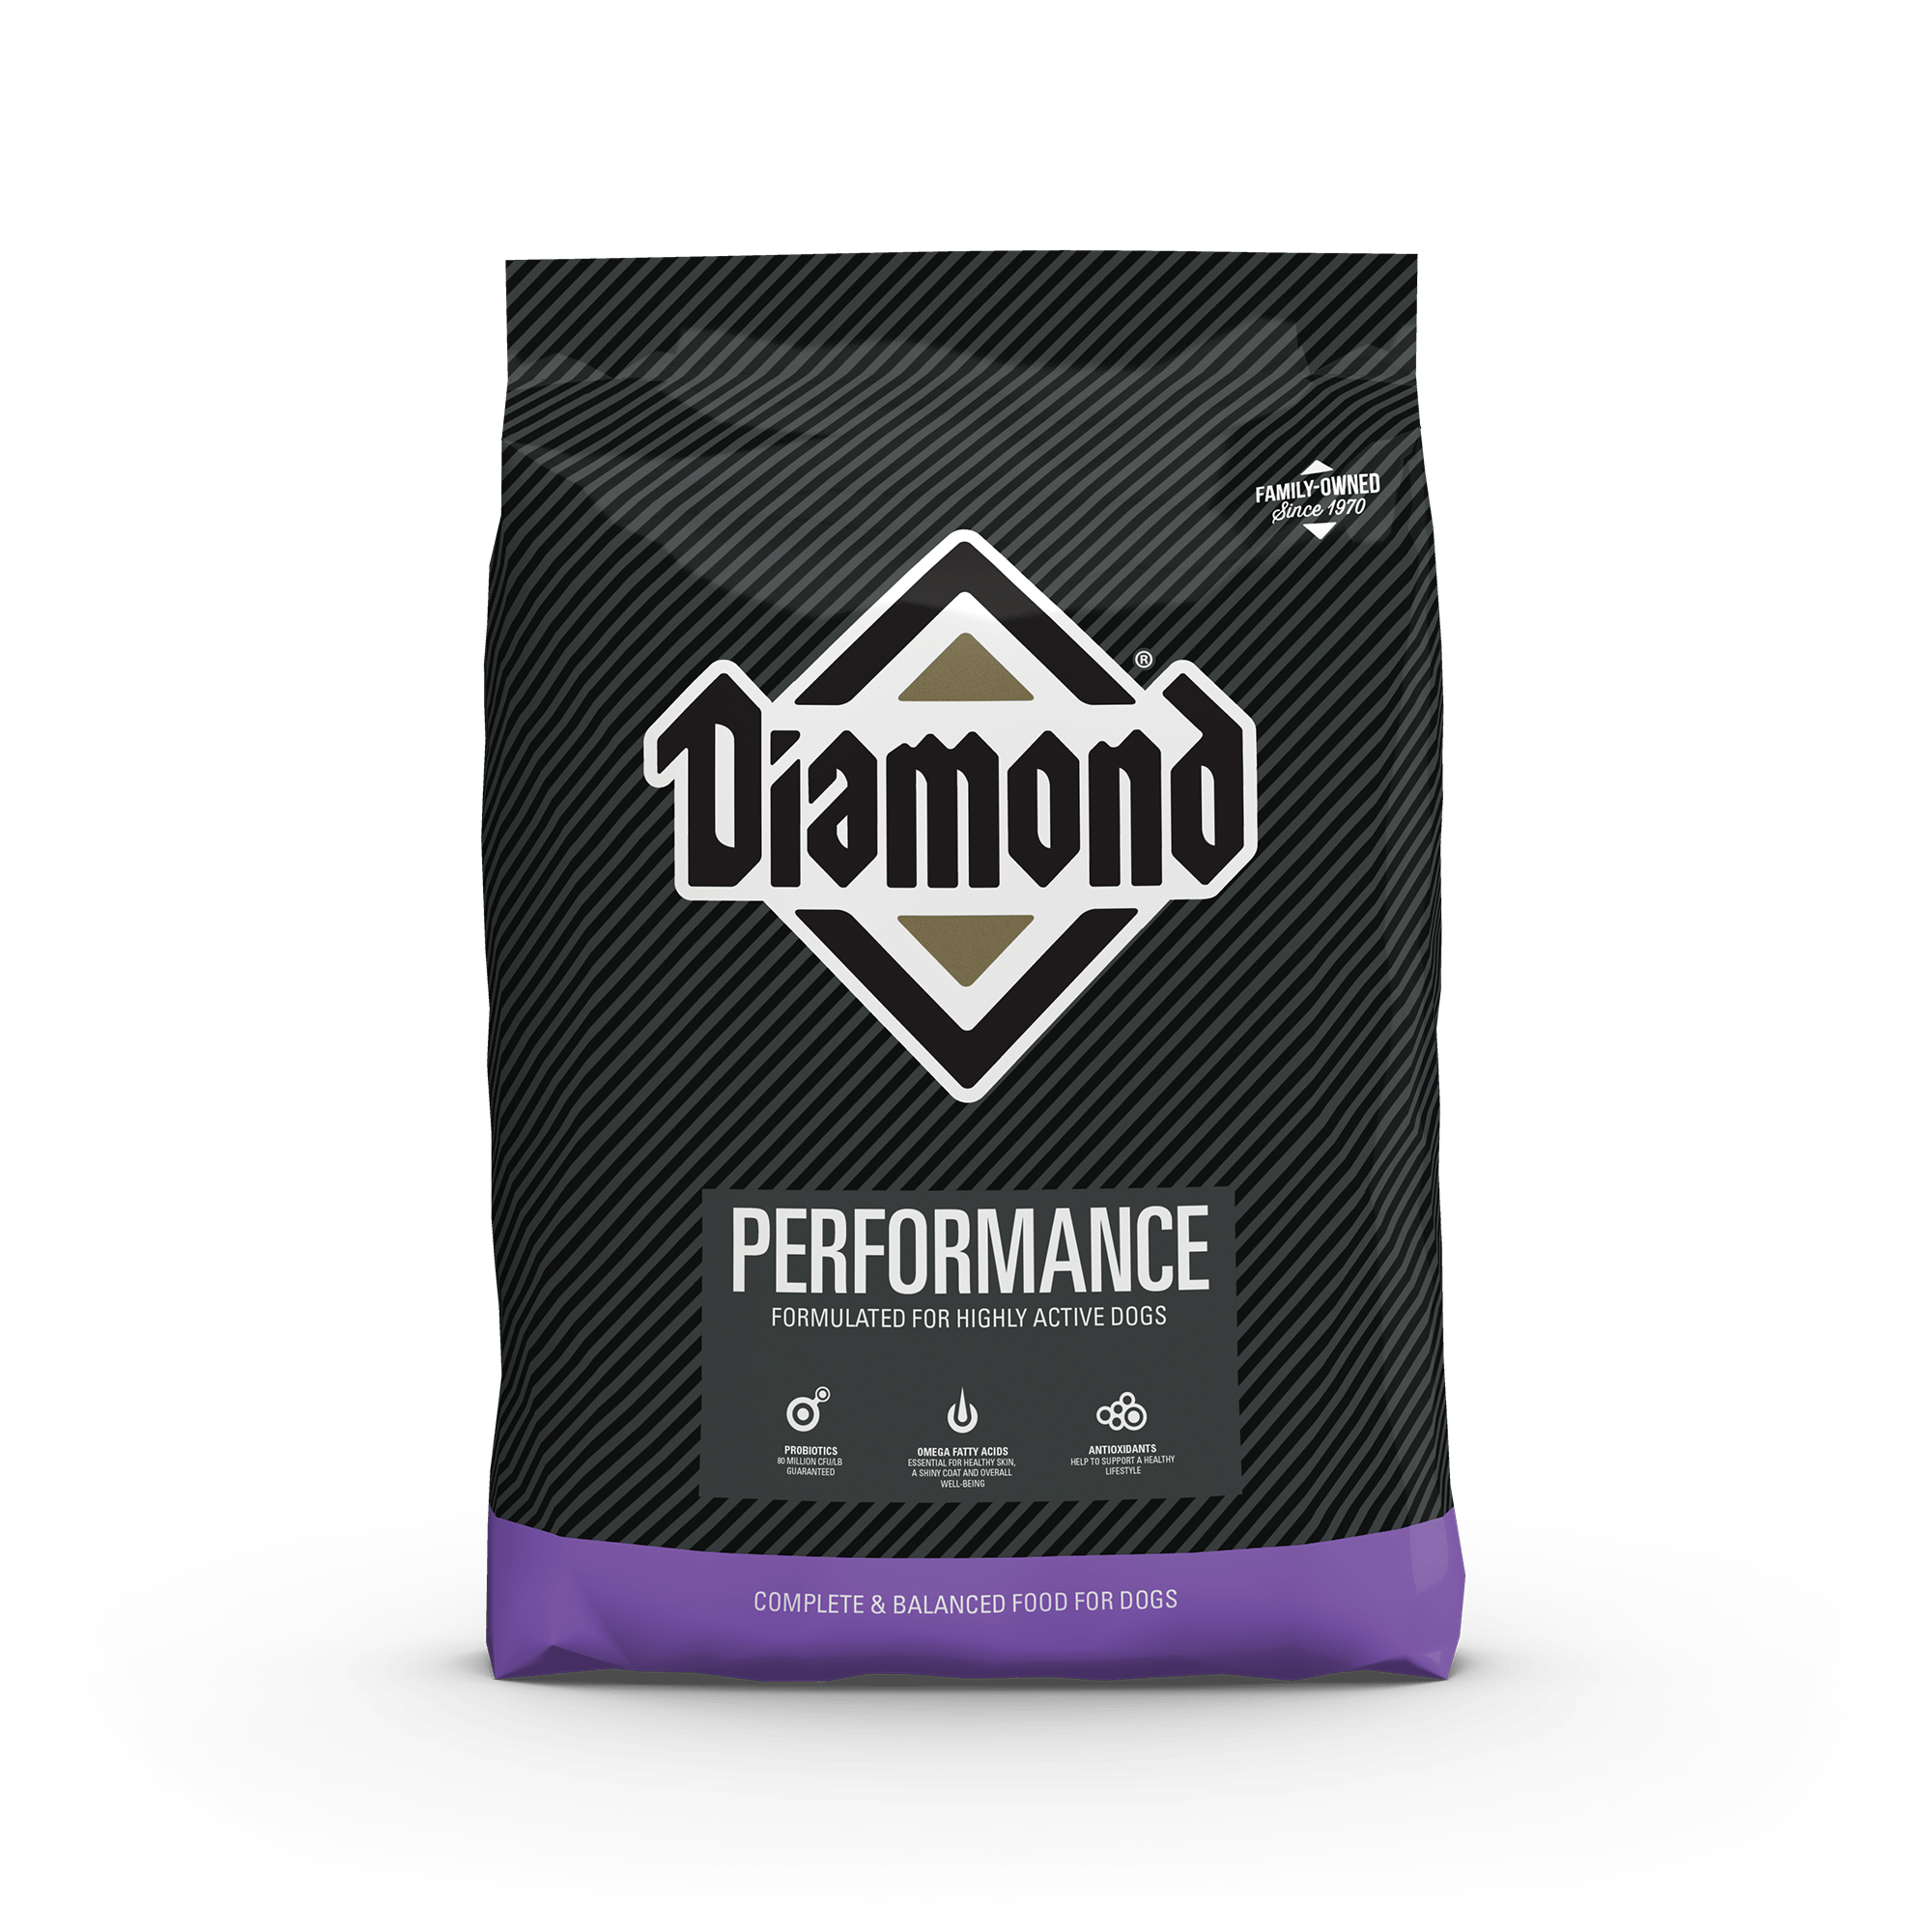 Performance product packaging